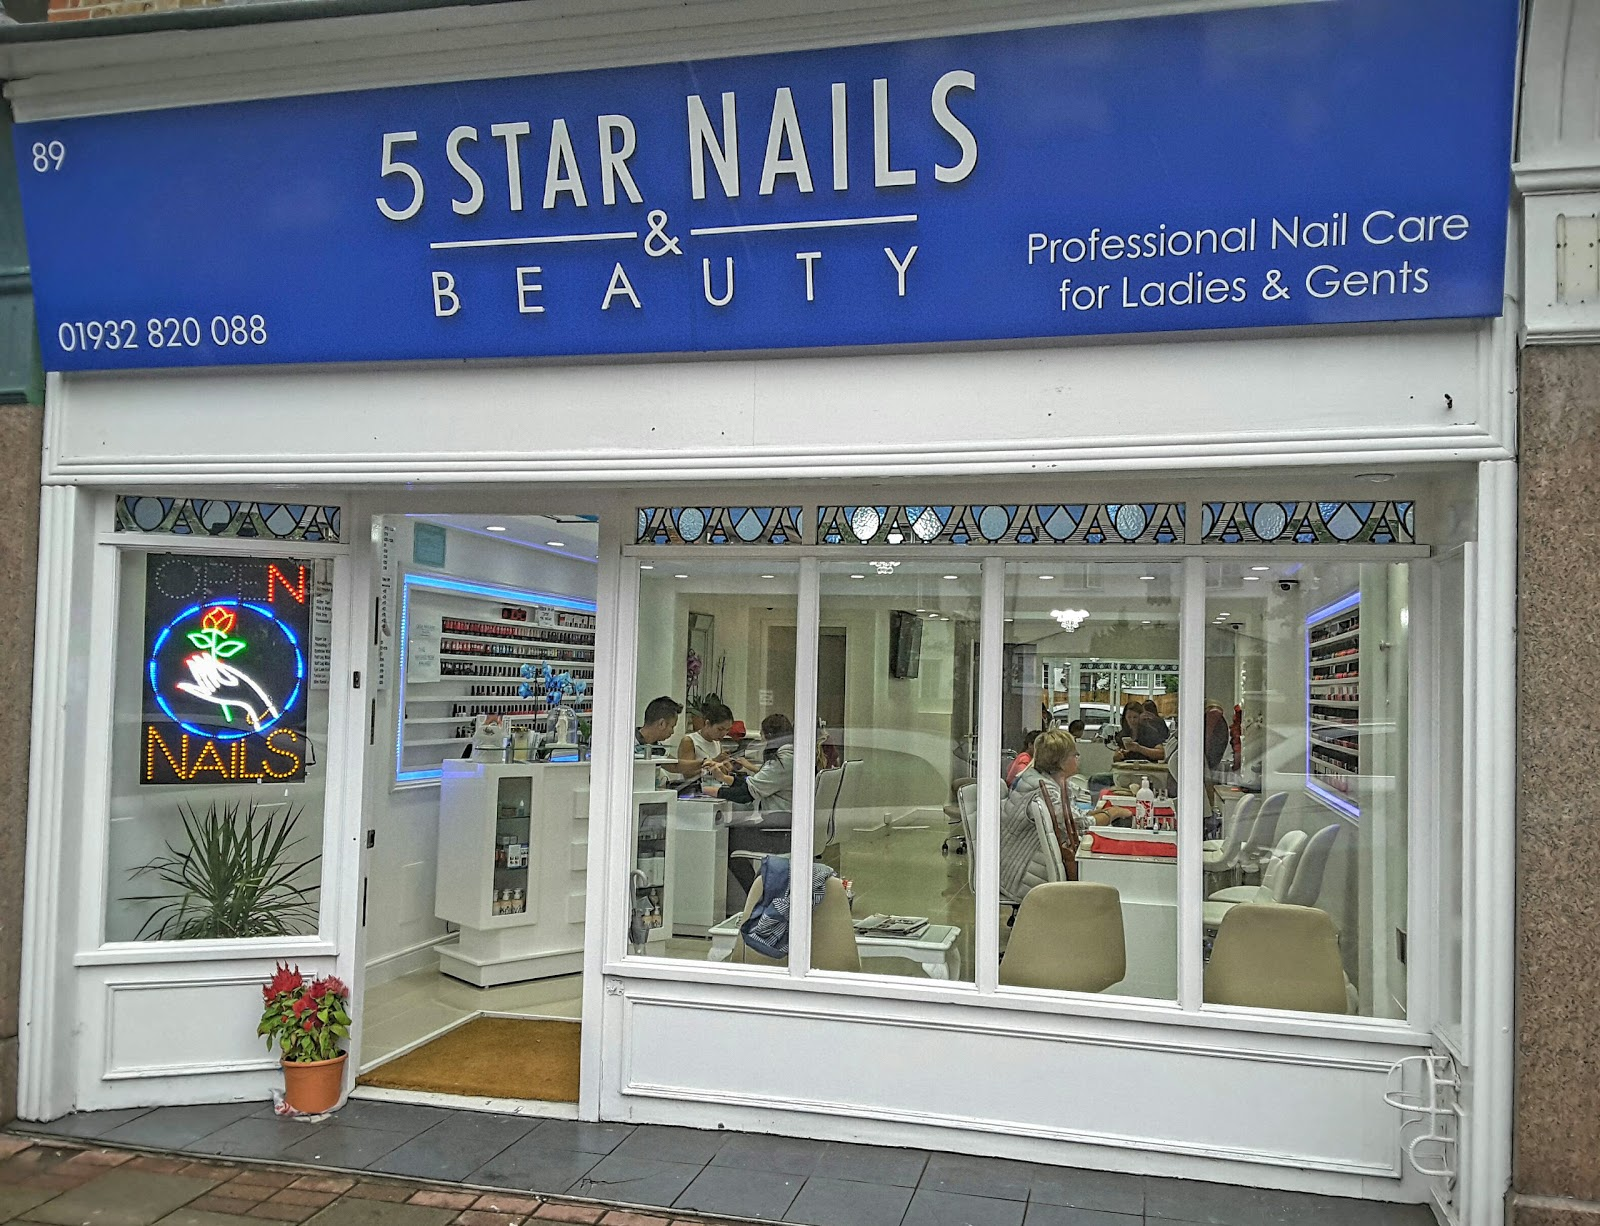 5 Star Nails and beauty, 89 Queens Road, Weybridge, Reviews and ...